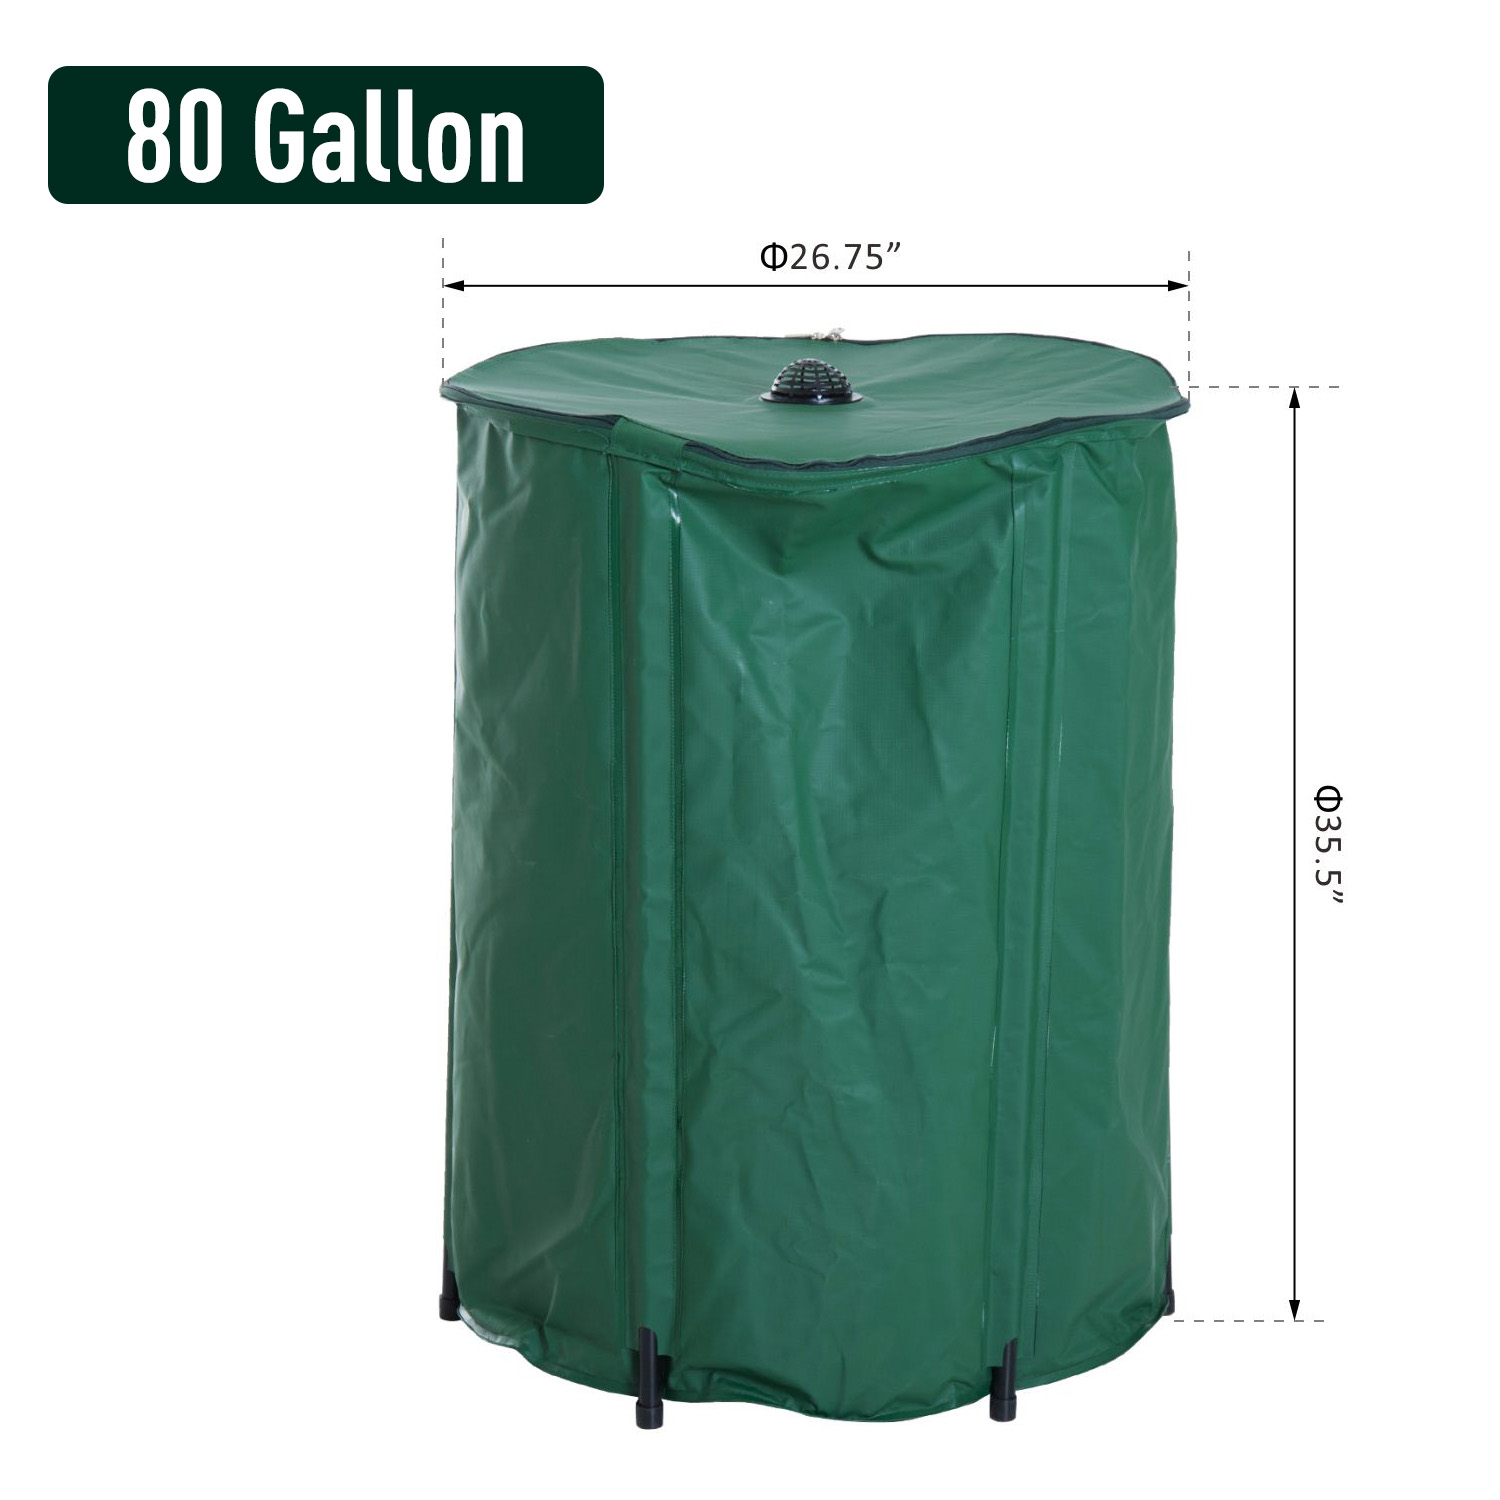 Outsunny 80 Gallon Barrel Rain Harvesting System With Water Catchment Tank